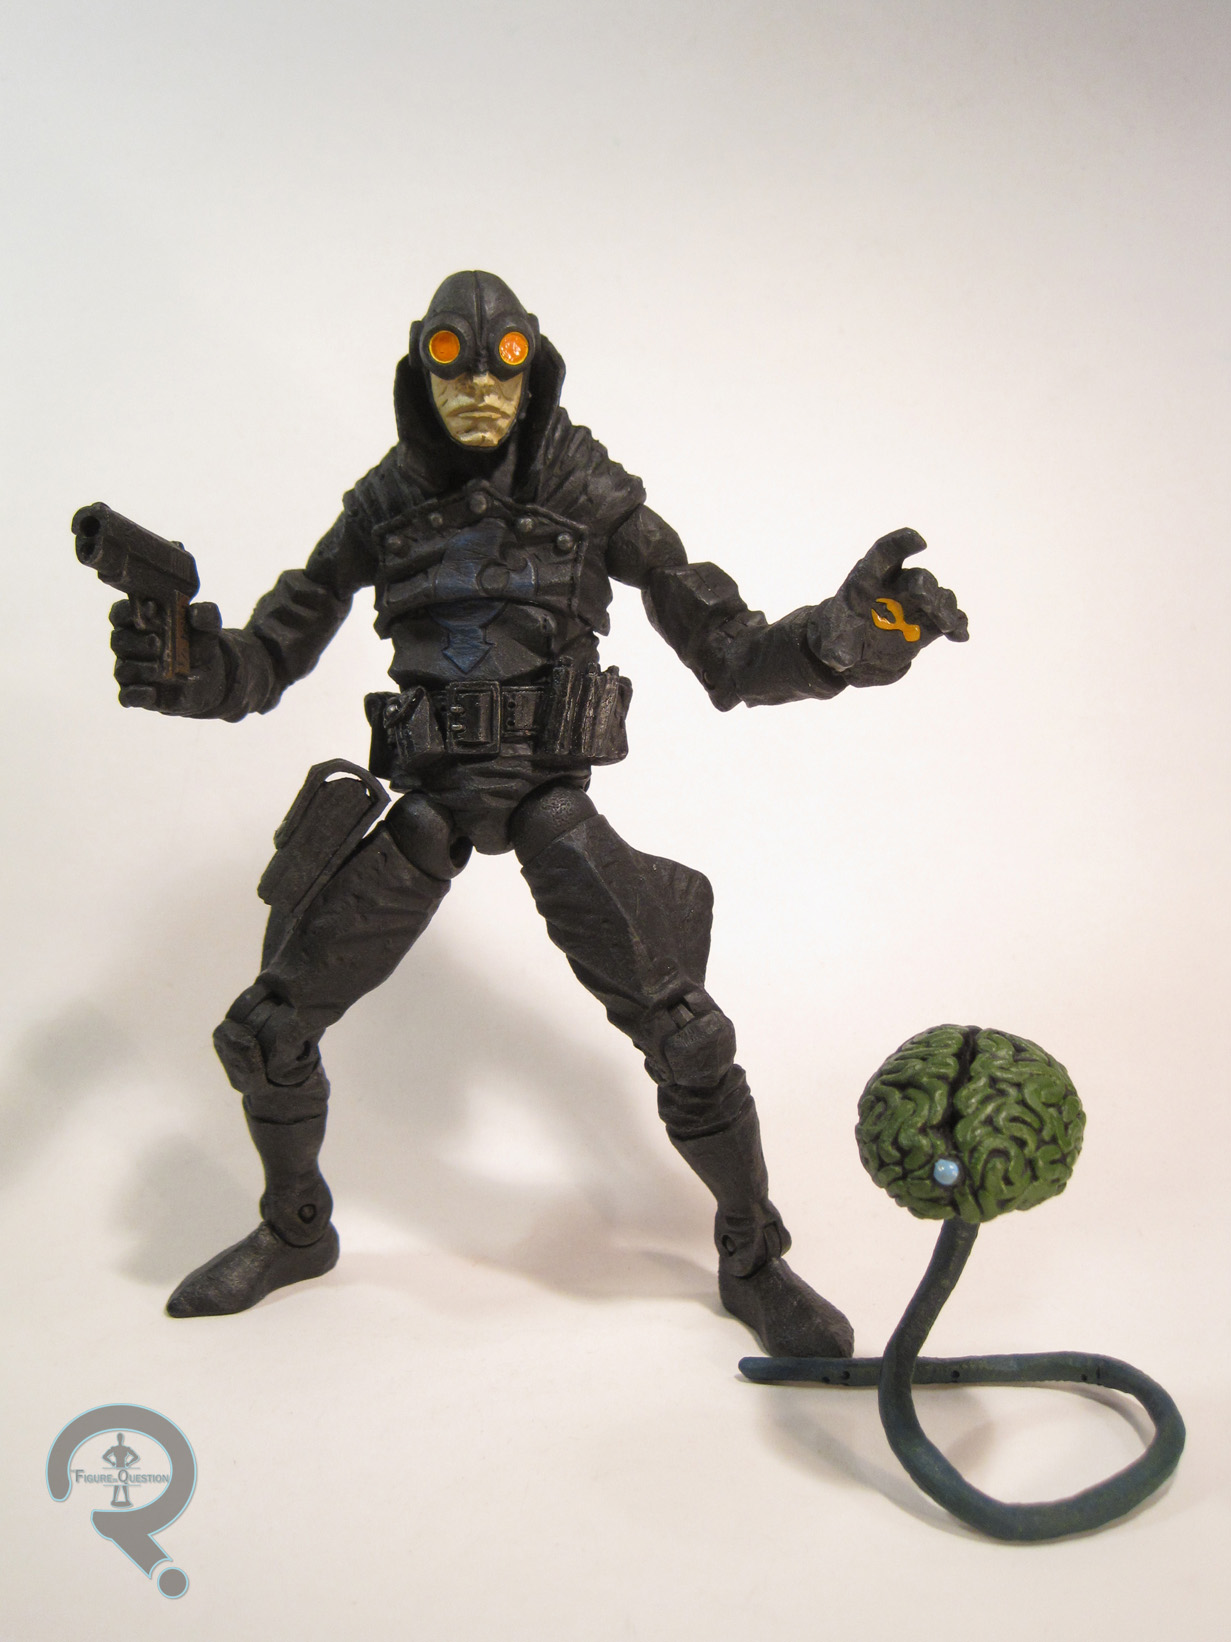 0880 lobster johnson the figure in question